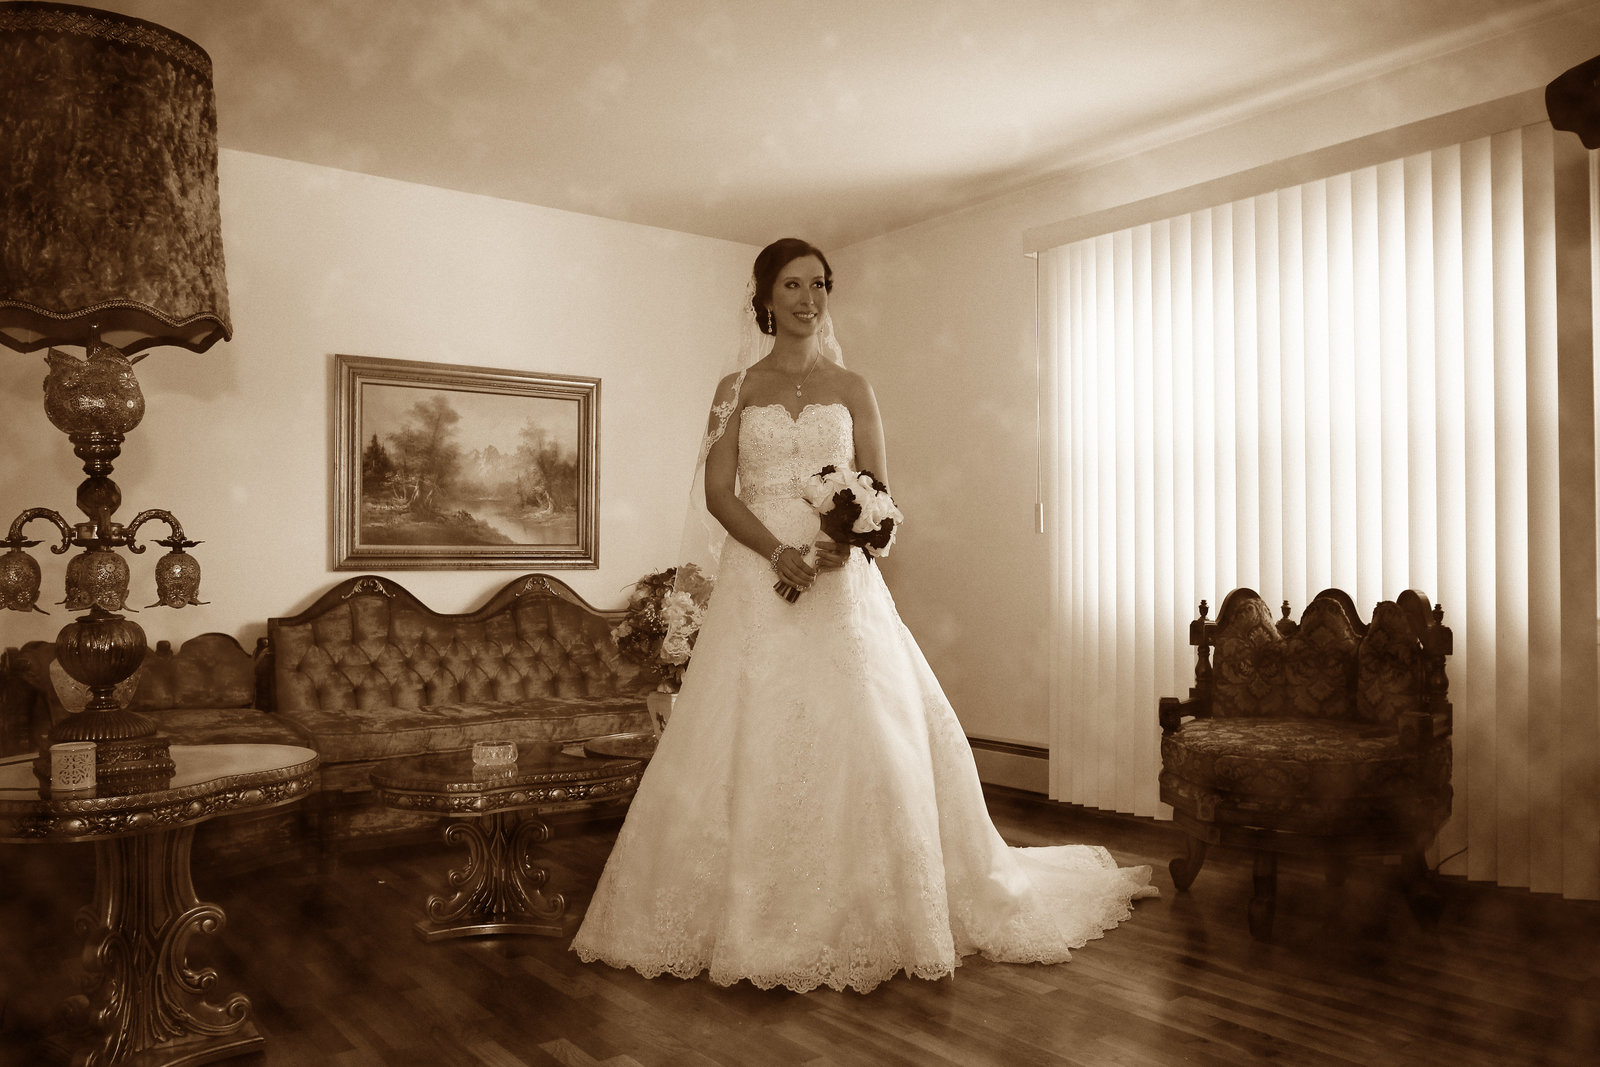 van-vleck-house-wedding-photos-IMG_6181